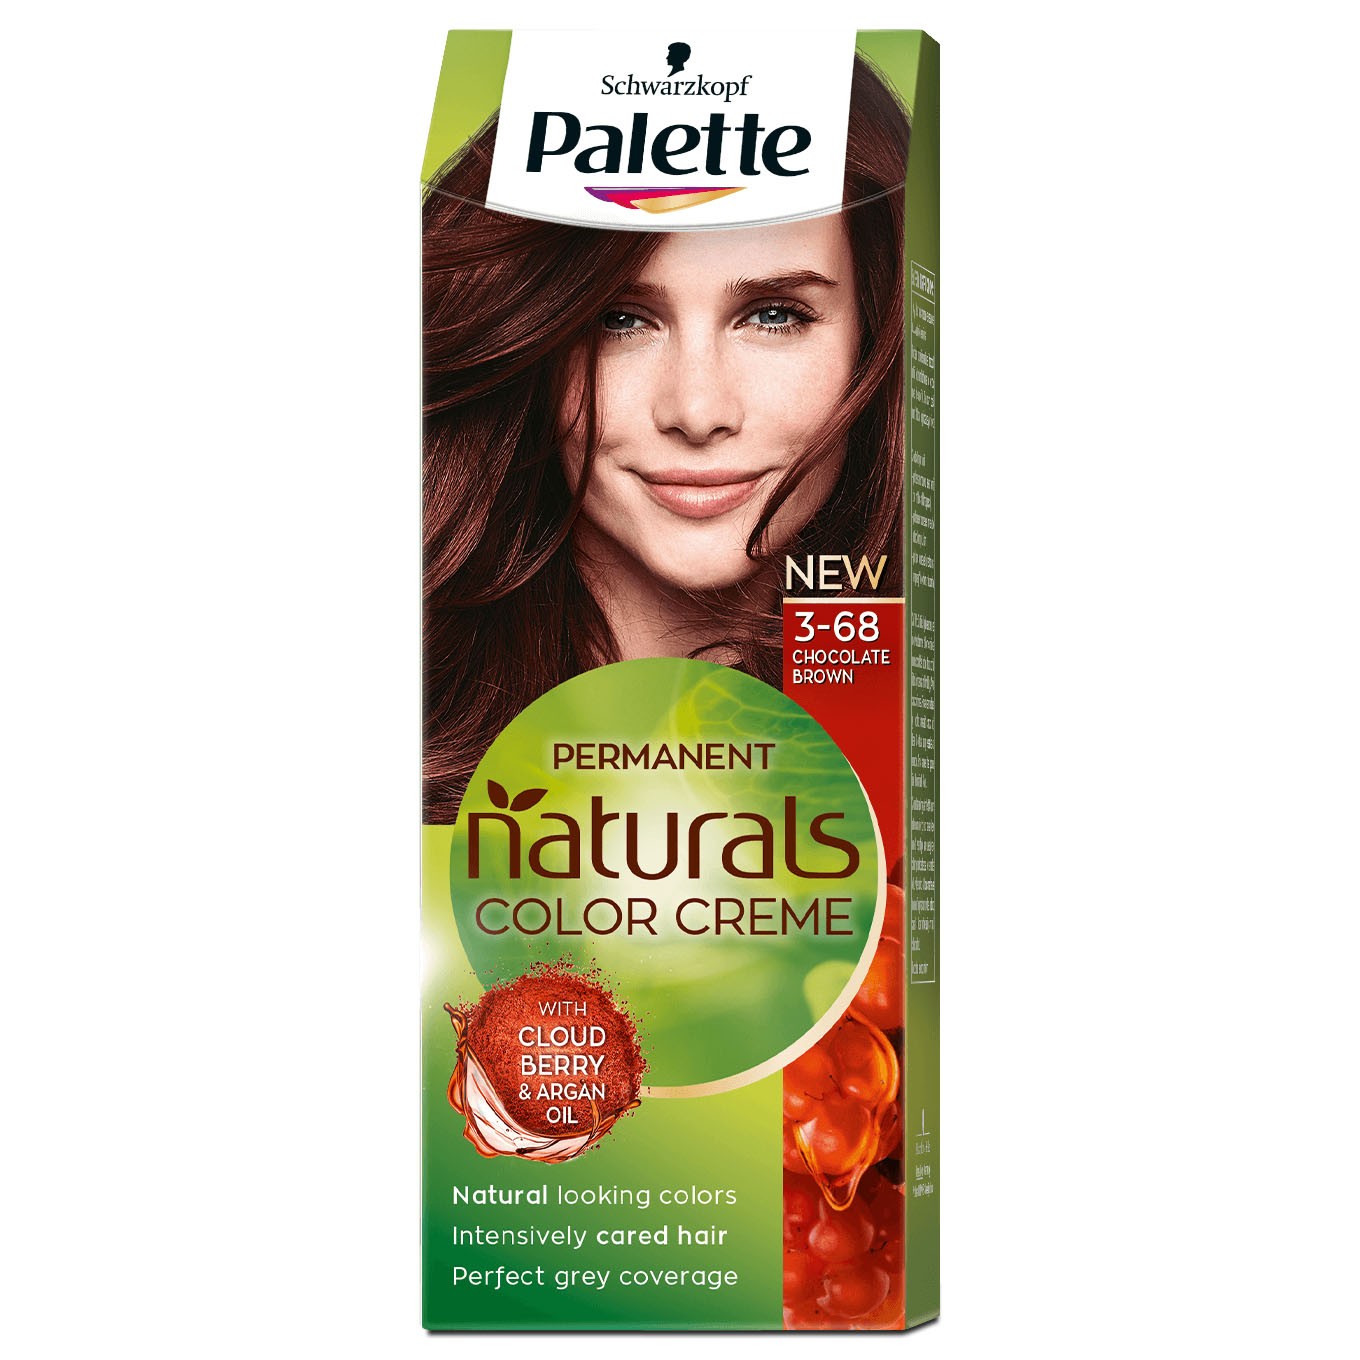 Home Health Beauty Hair Care Coloring Permanent Palette Naturals Color Creme 868 3 68 Chocolate Brown